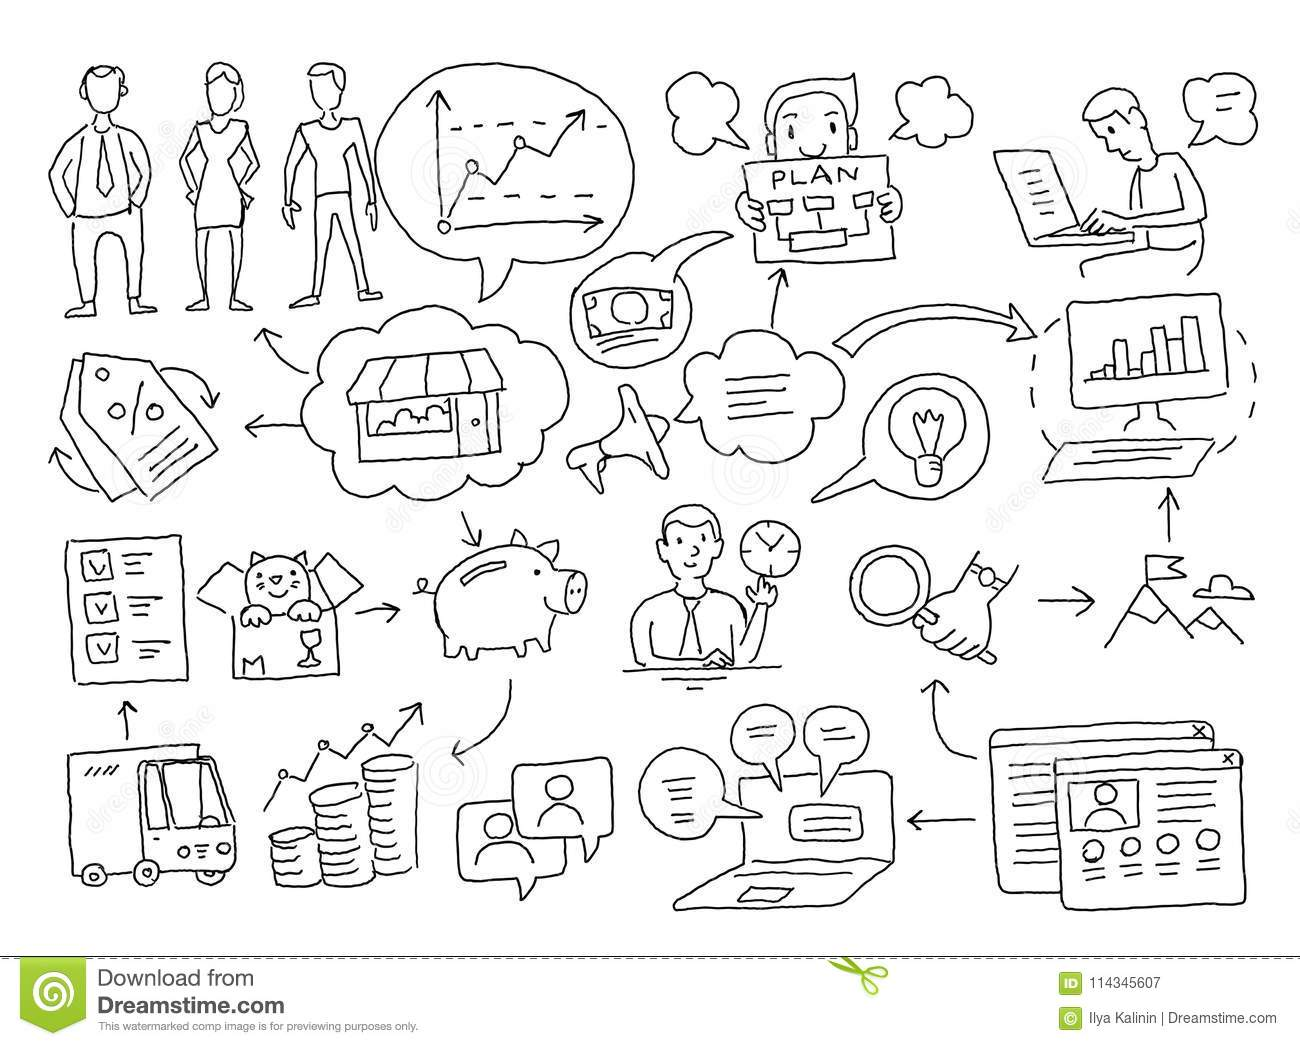 hight resolution of business plan presentation freehand drawing marketing and planning of sales on internet advancement promotion hand drawn black line vector stock clipart